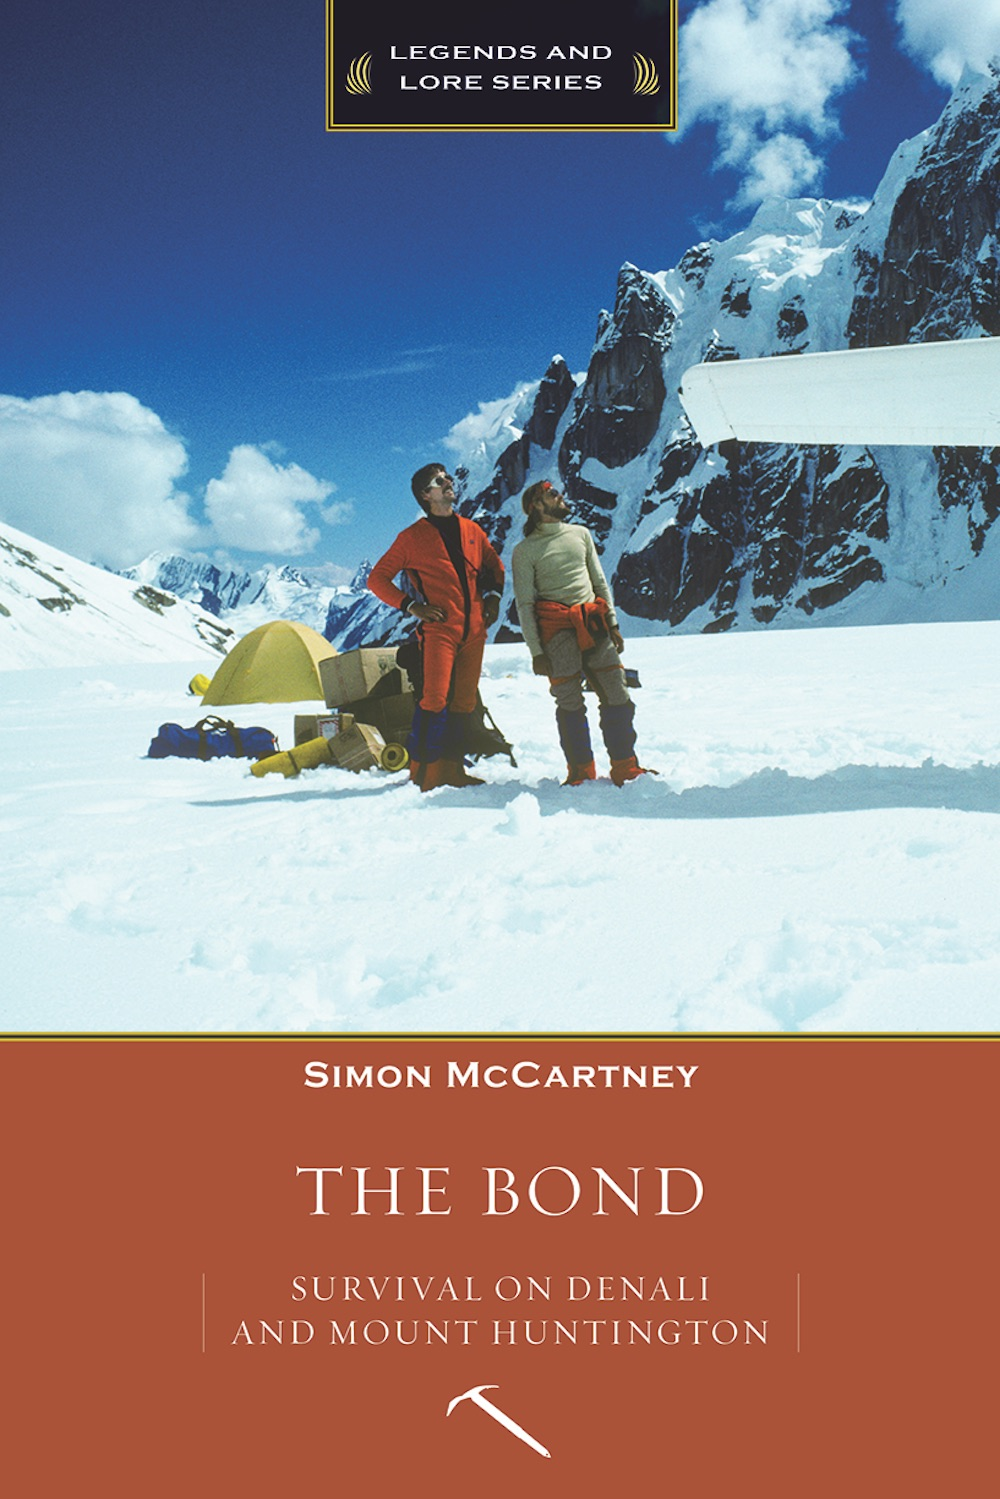 The Bond: Survival of Denali and Mount Huntington, by Simon McCartney. [Photo] Courtesy of Mountaineers Books